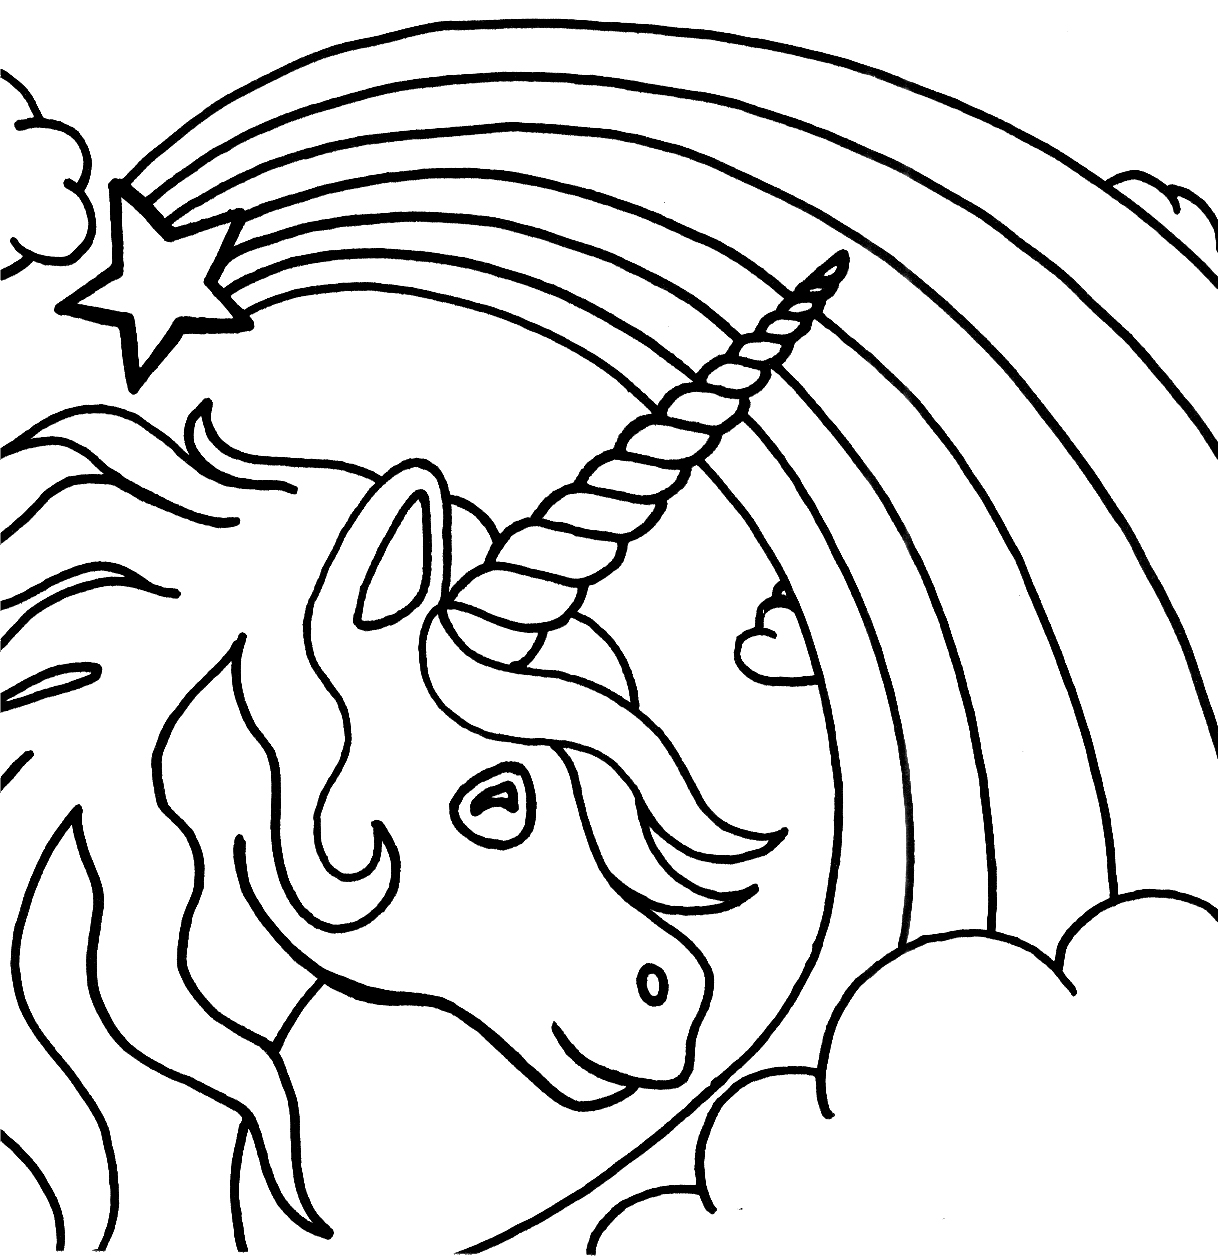 Free coloring pages to print and color - Unicorn Coloring Pages For Kids